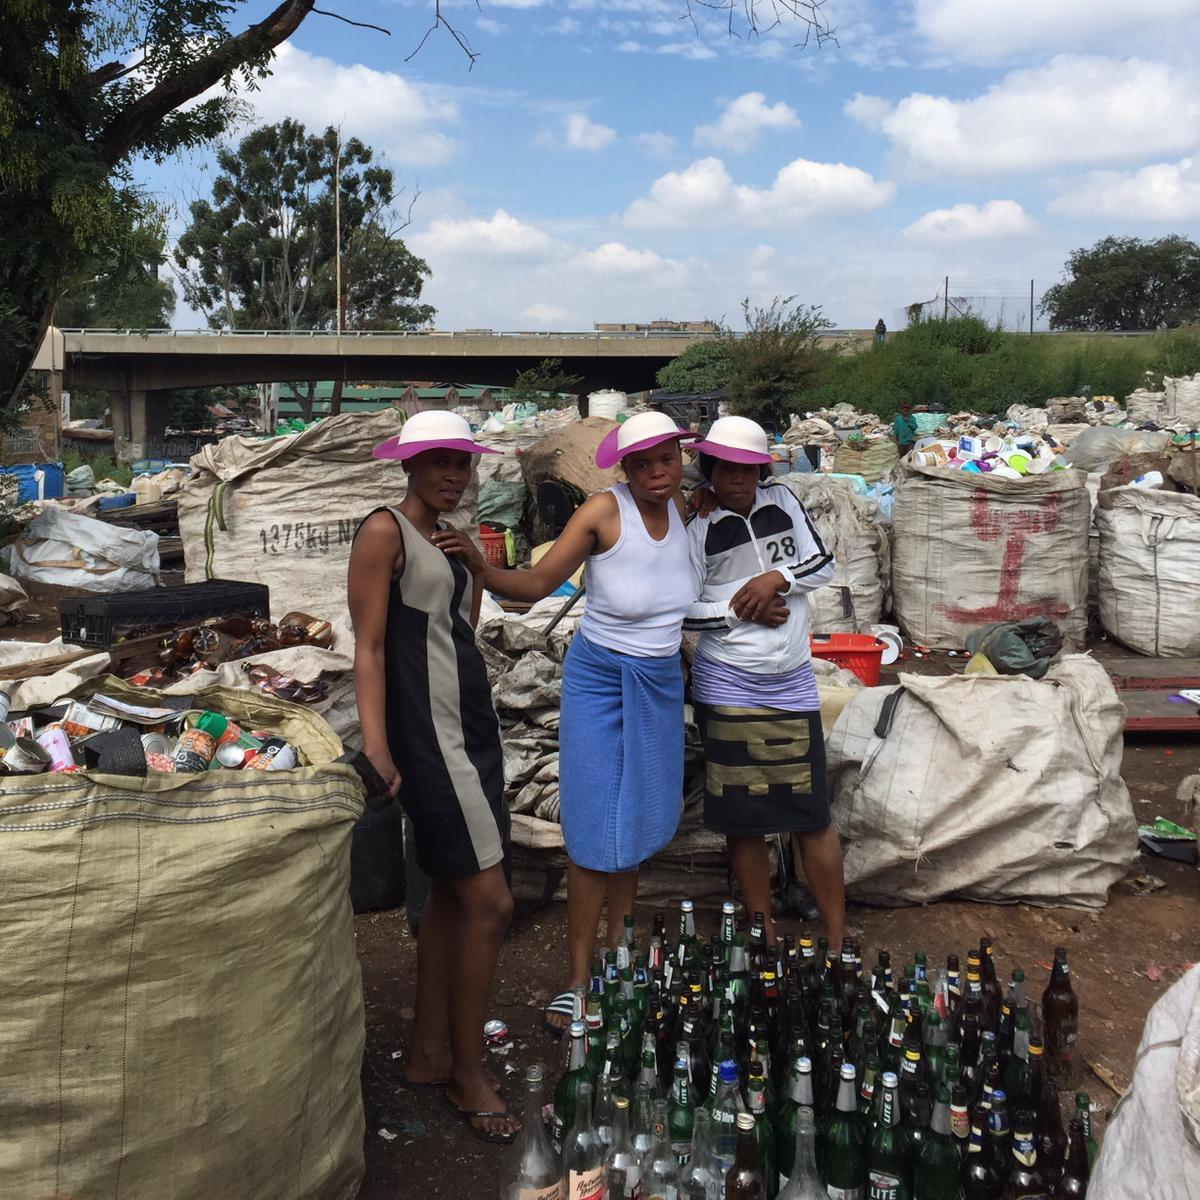 Waste pickers in Johannesburg